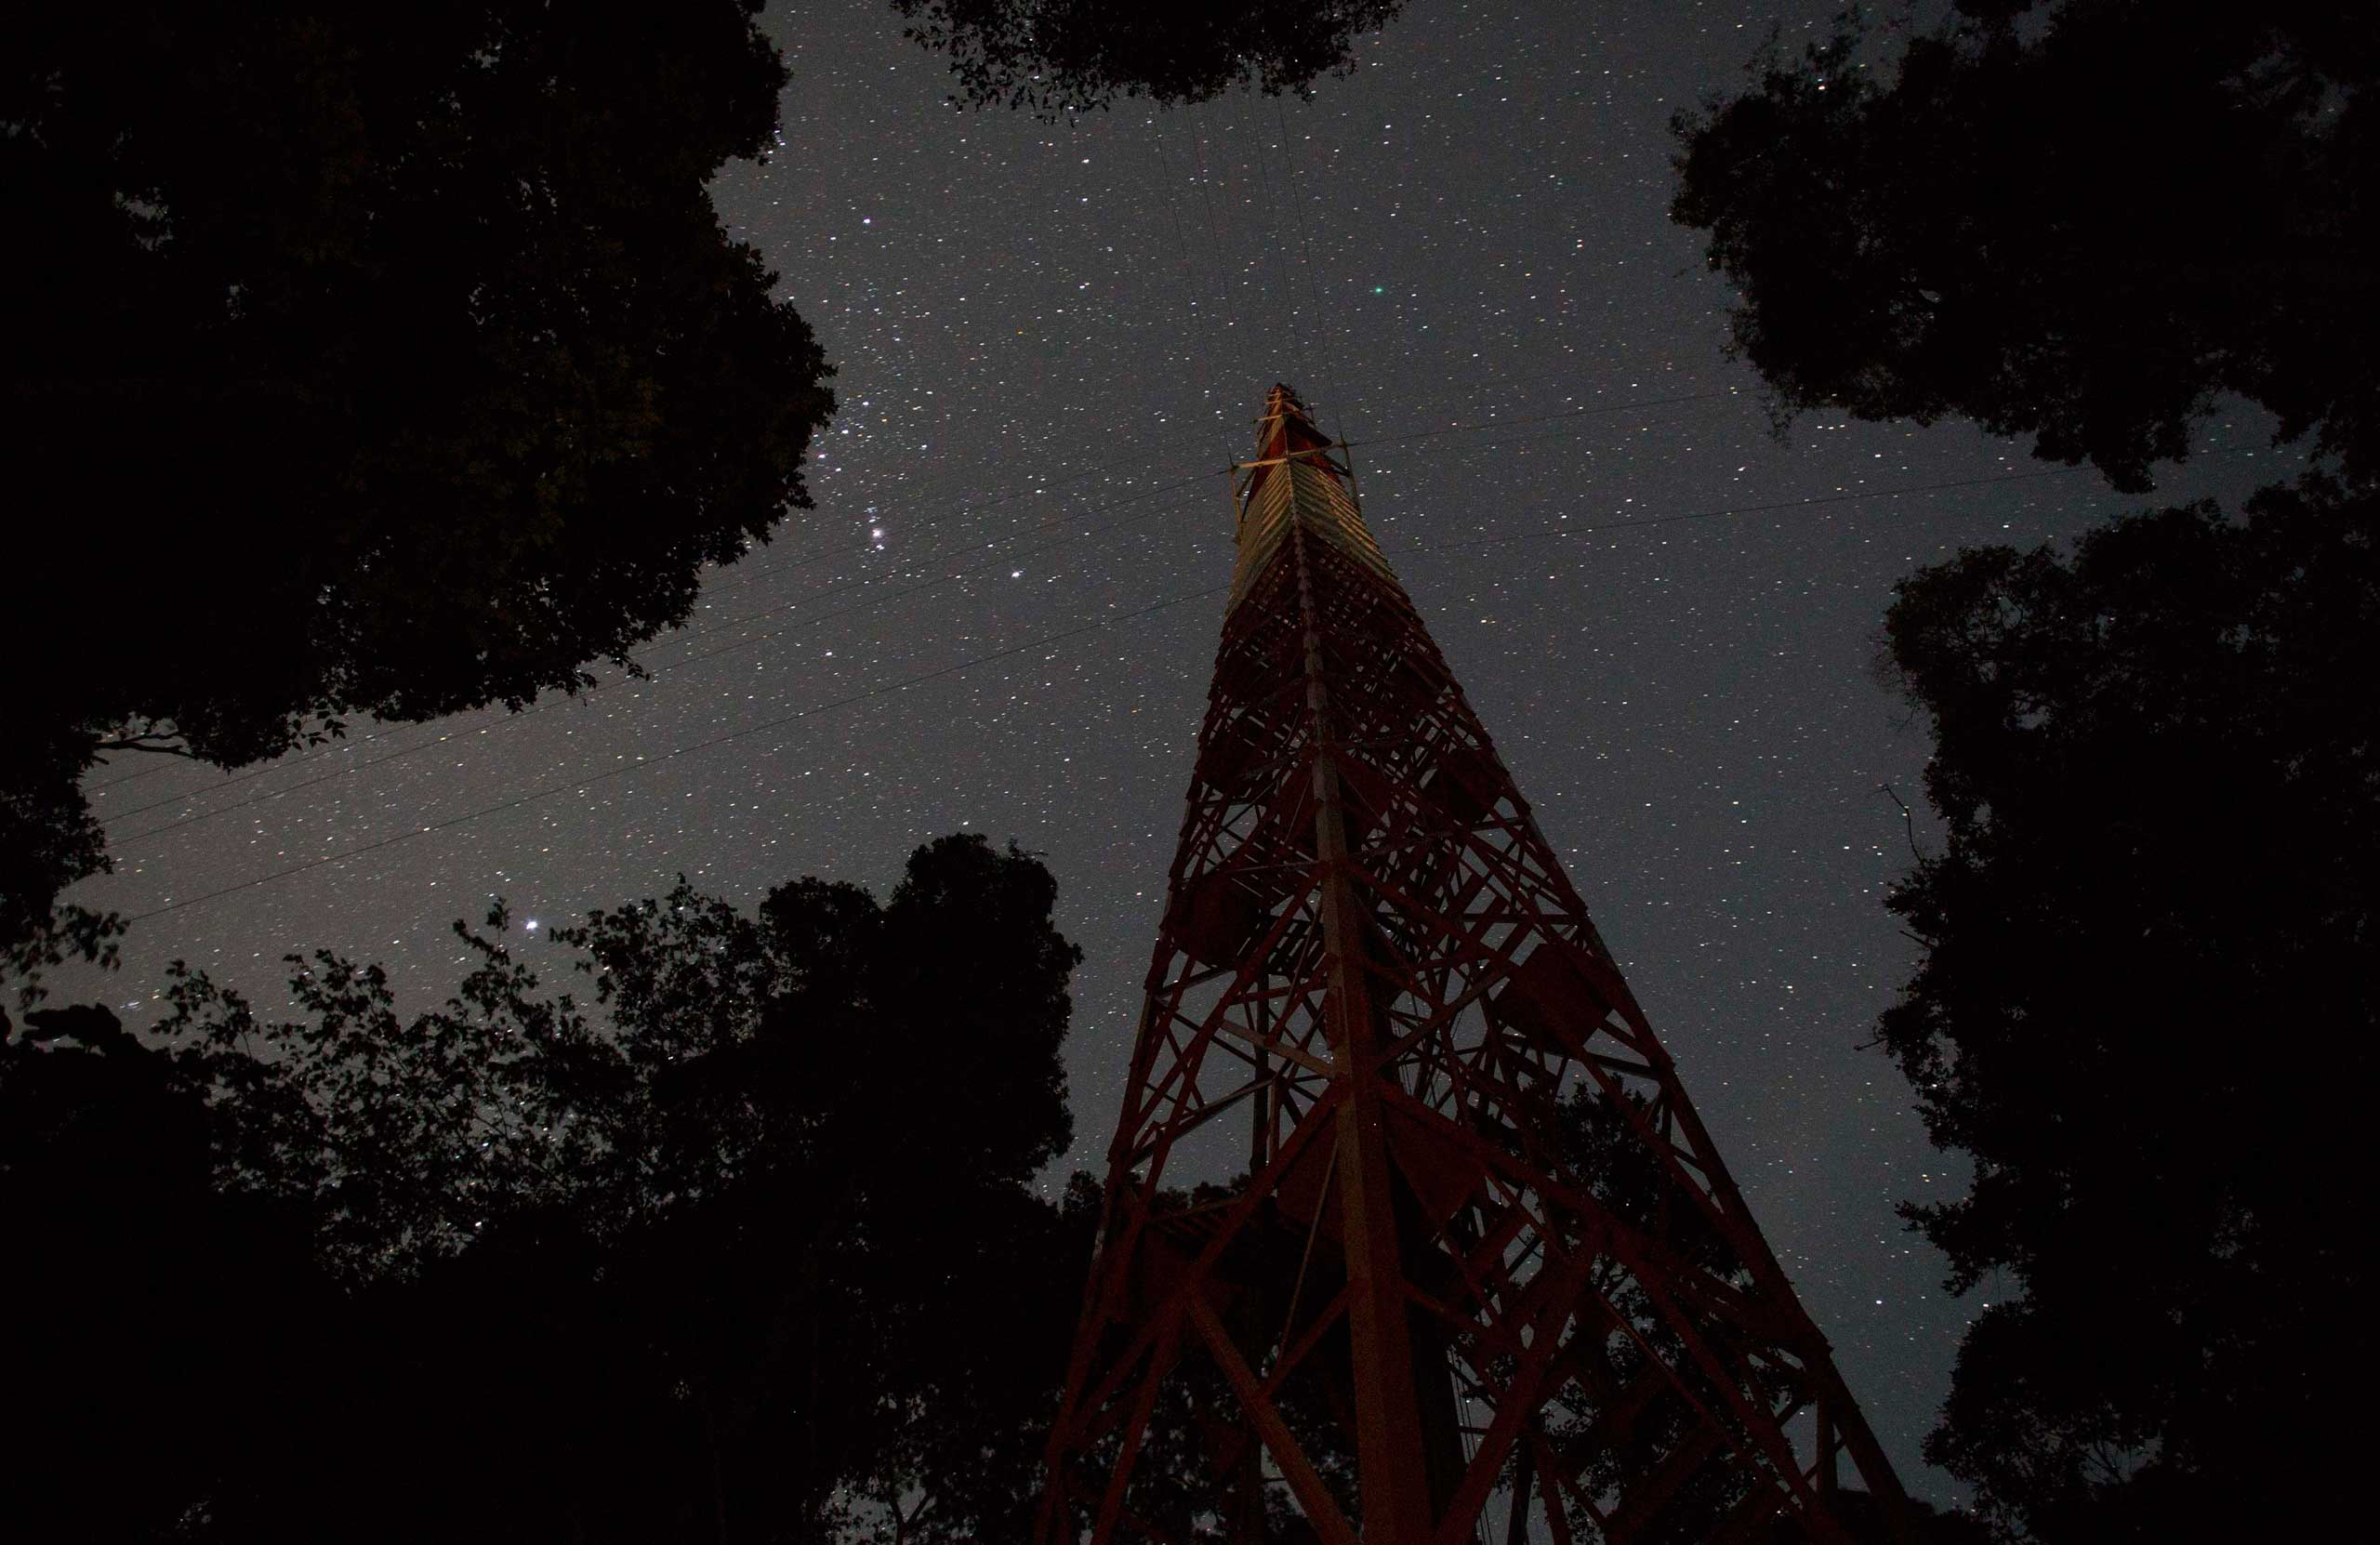 The Amazon Tall Tower Observatory (ATTO) is pictured in Sao Sebastiao do Uatuma in the middle of the Amazon forest in Amazonas state Jan. 8, 2015. The Amazon Tall Tower Observatory is a project of Brazil's National Institute of Amazonian Research and Germany's Max Planck Institute and will be equipped with high-tech instruments and an observatory to monitor relationships between the jungle and the atmosphere from next July.